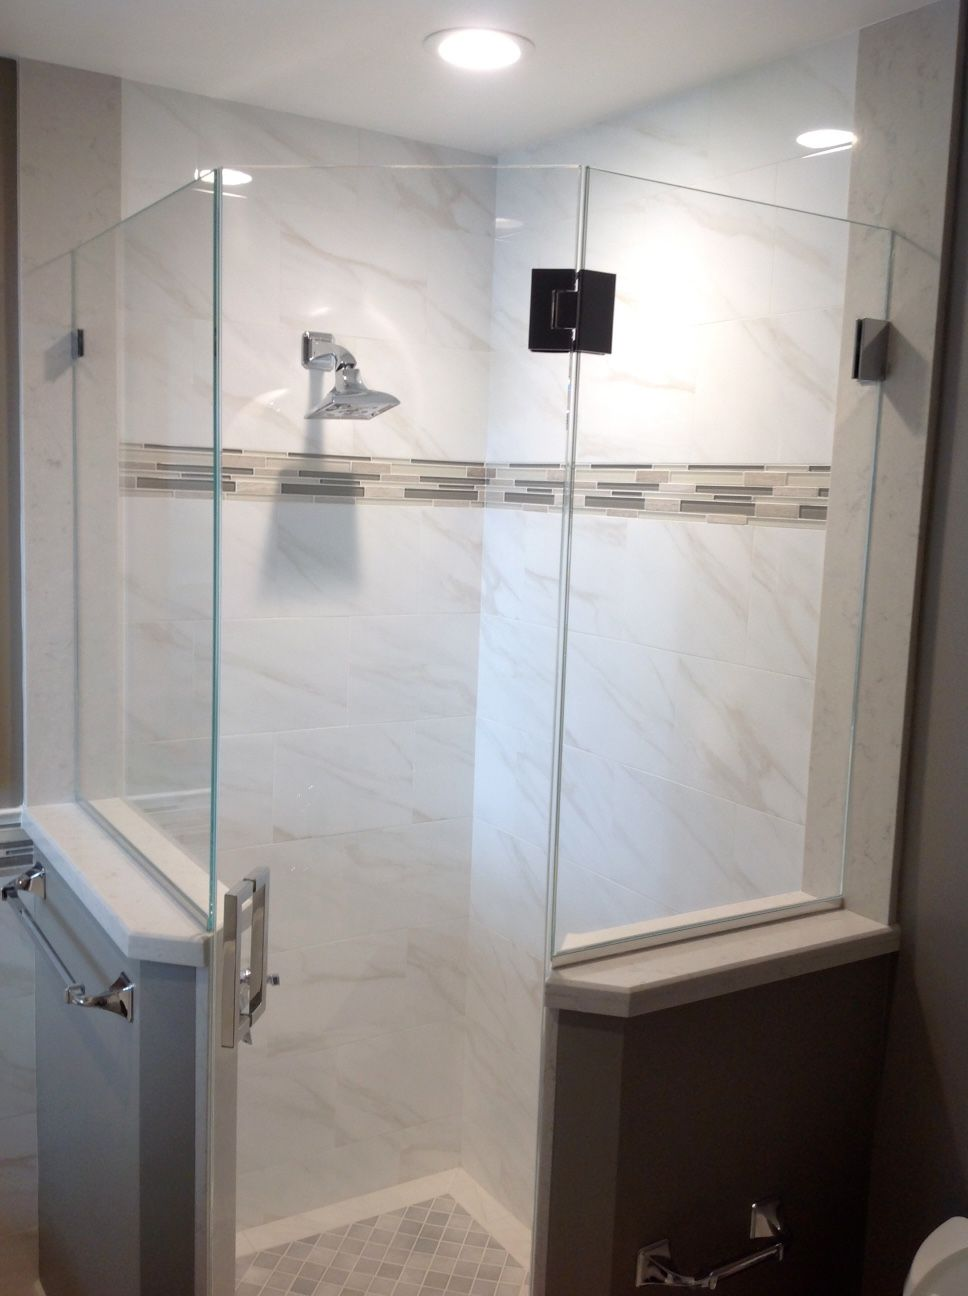 Marble look ceramic tiles with a linear glass accent bathrooms marble look ceramic tiles with a linear glass accent dailygadgetfo Gallery